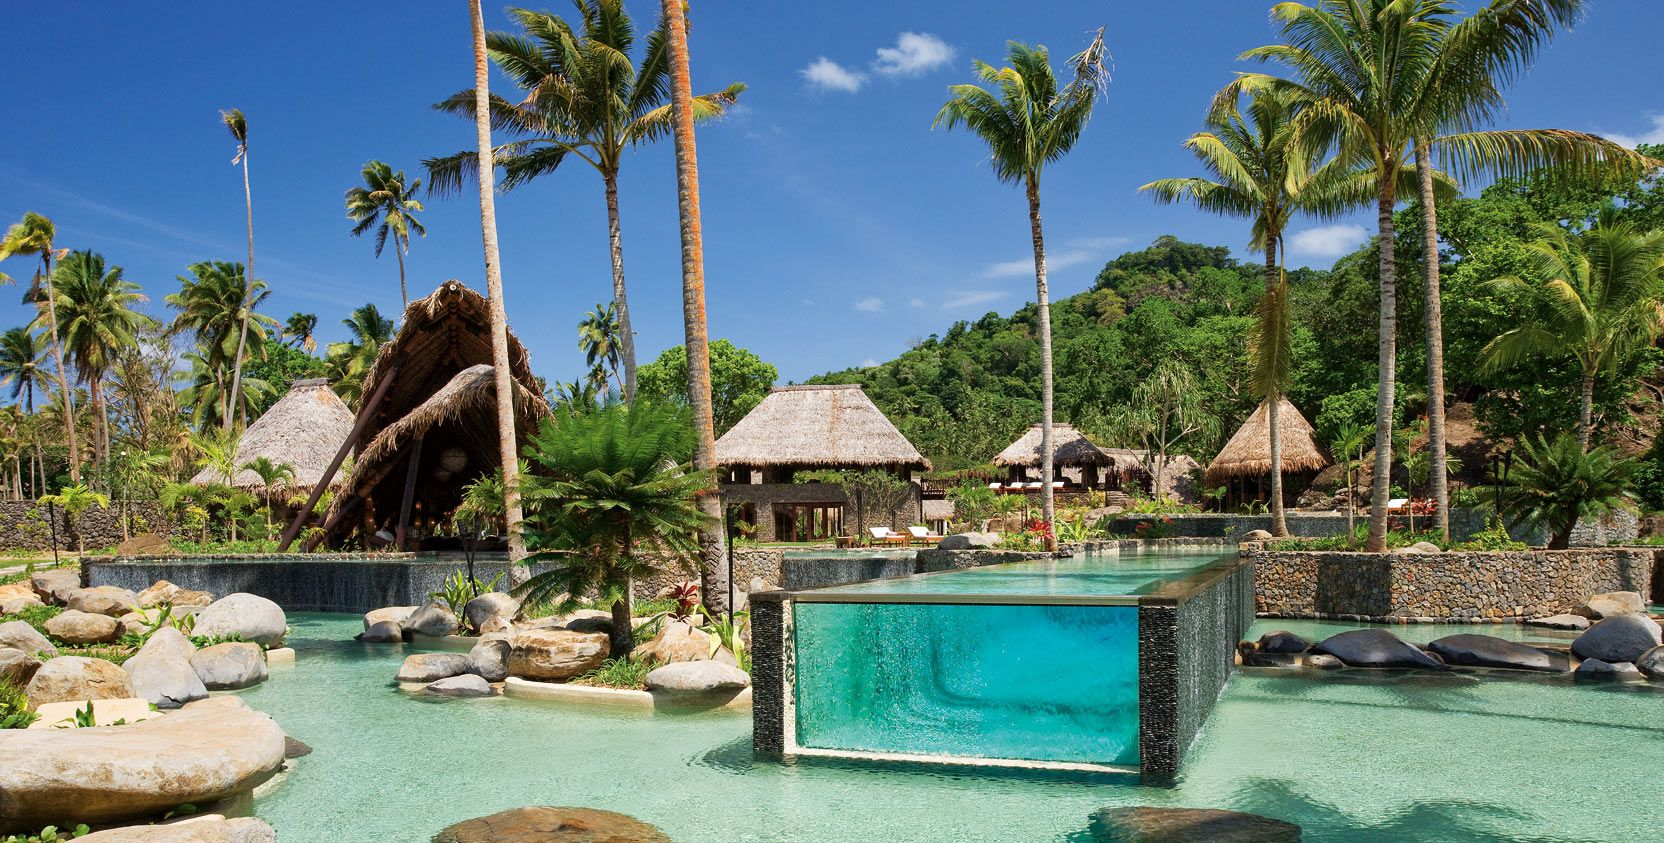 Luxury Escapes at Laucala Island Fiji - Lavish Hotels and Resorts